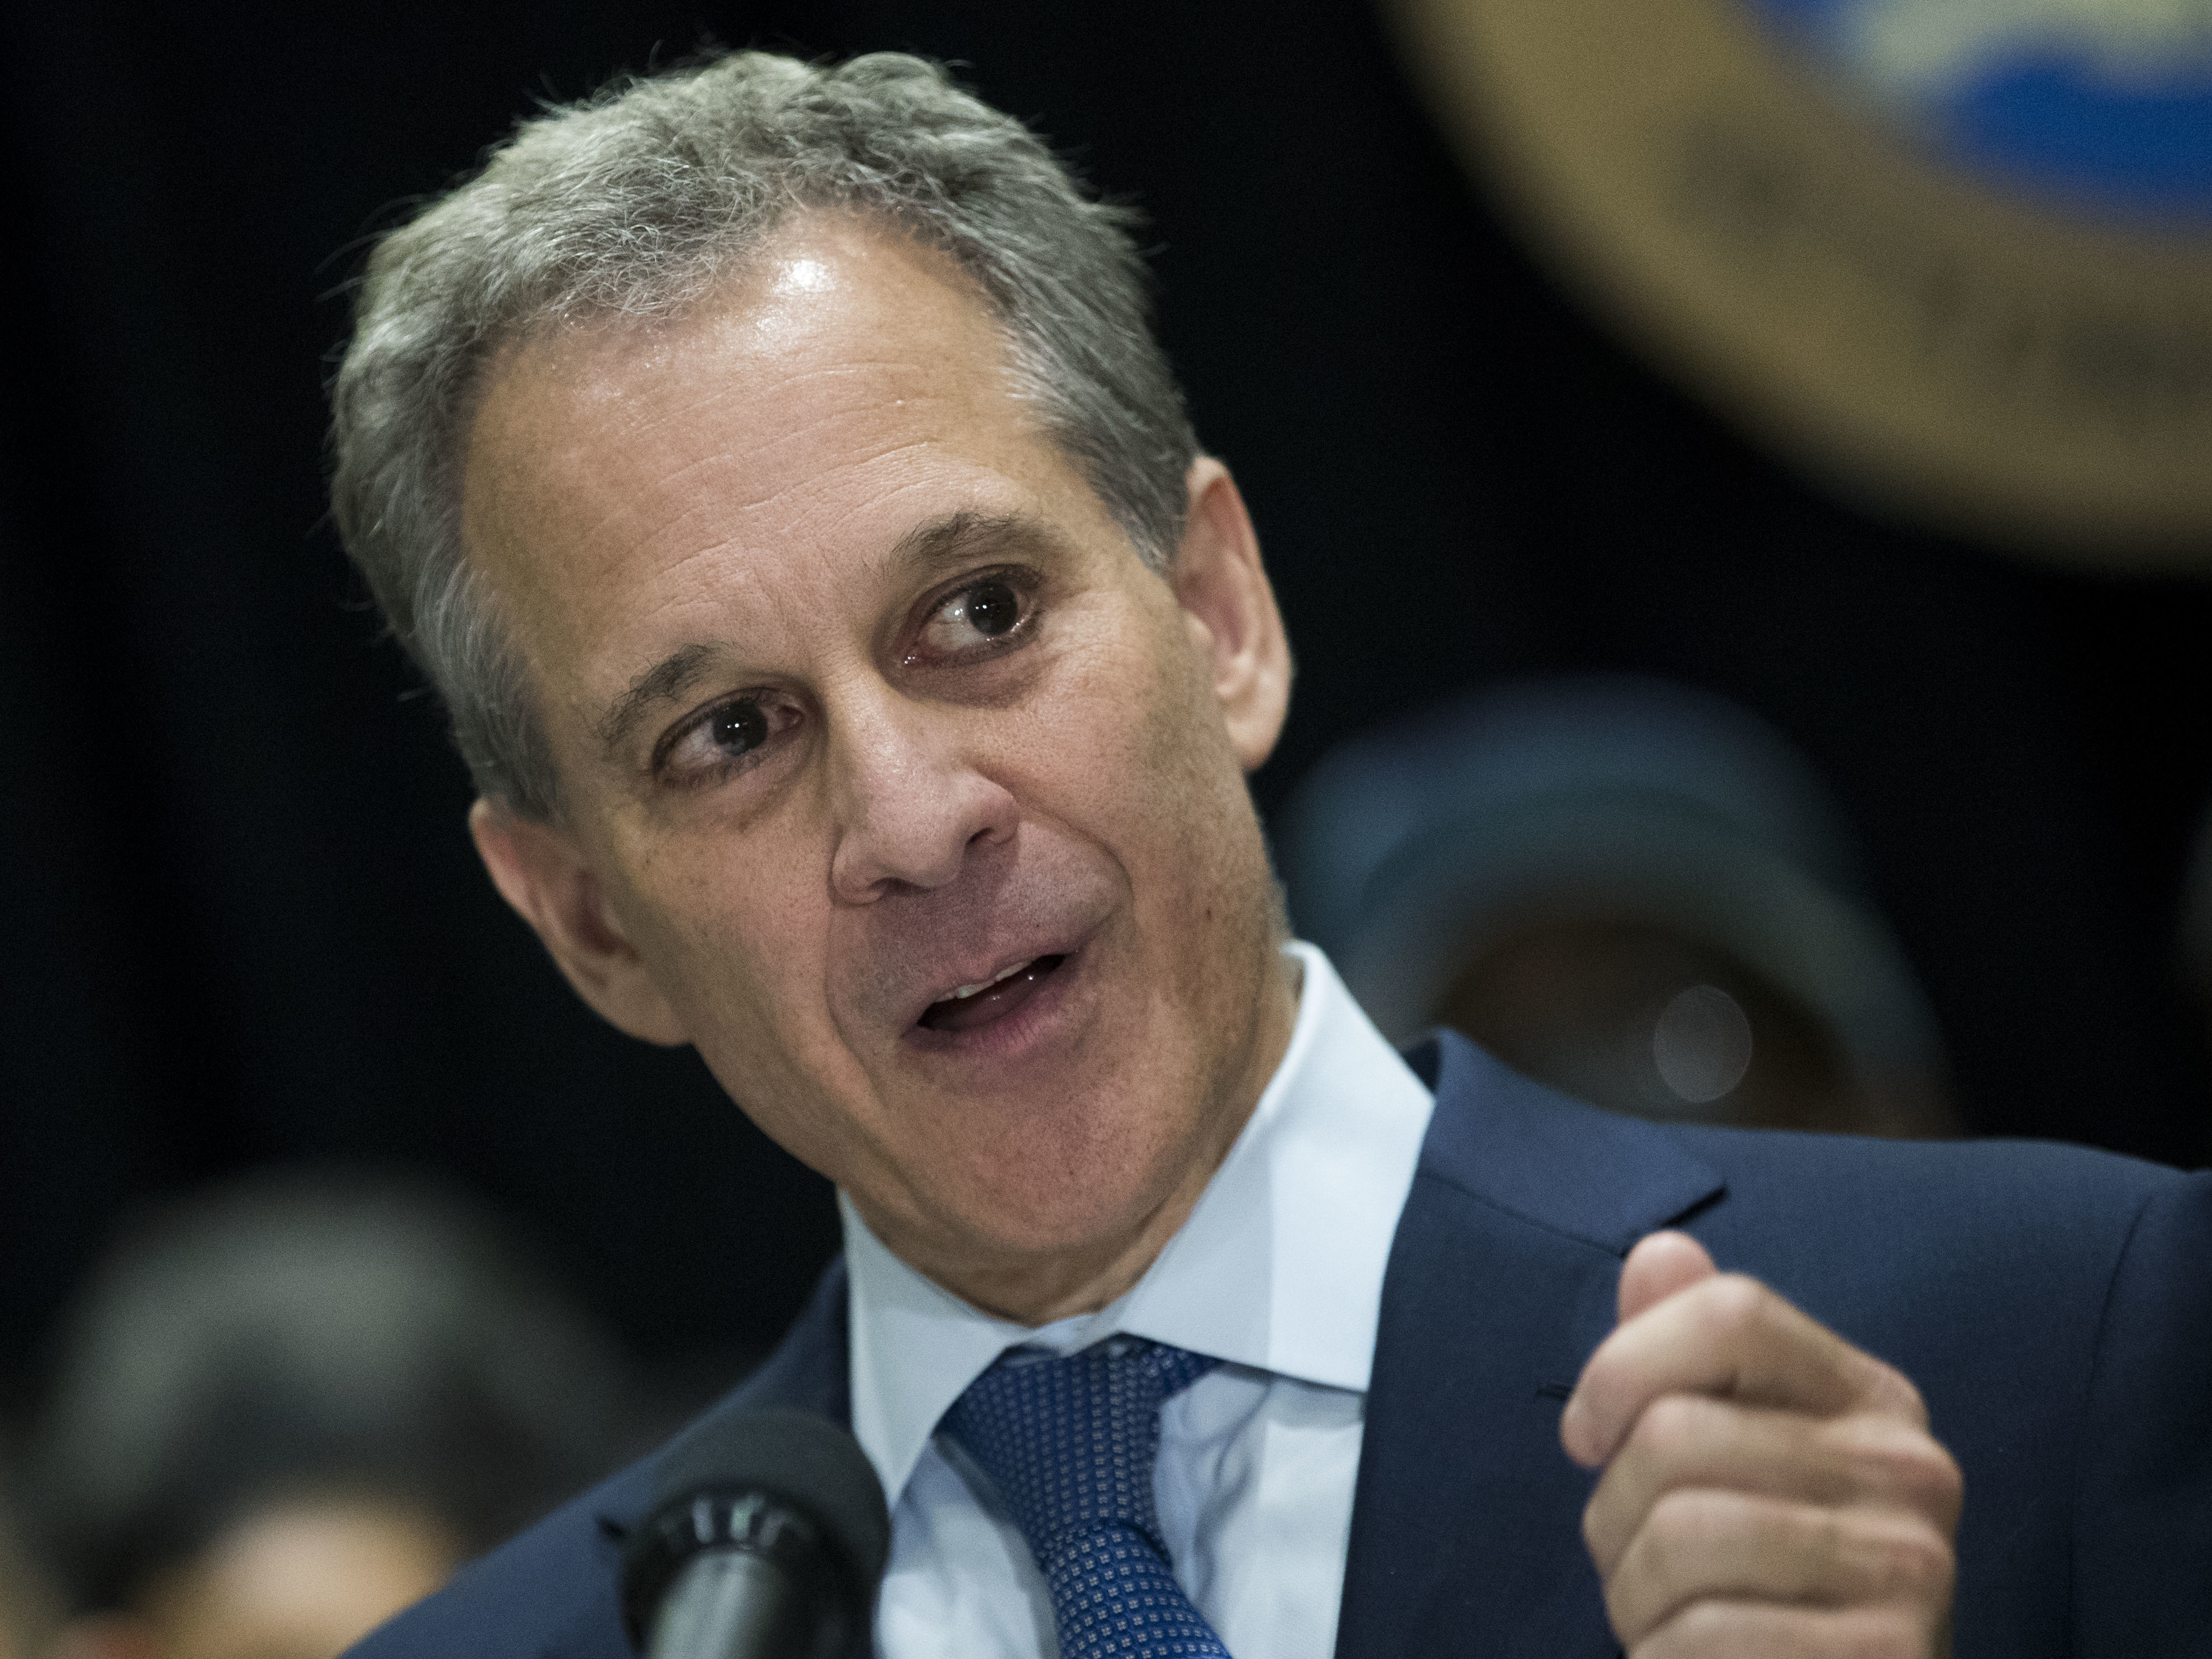 Schneiderman making sure hospitals don't charge for rape kits